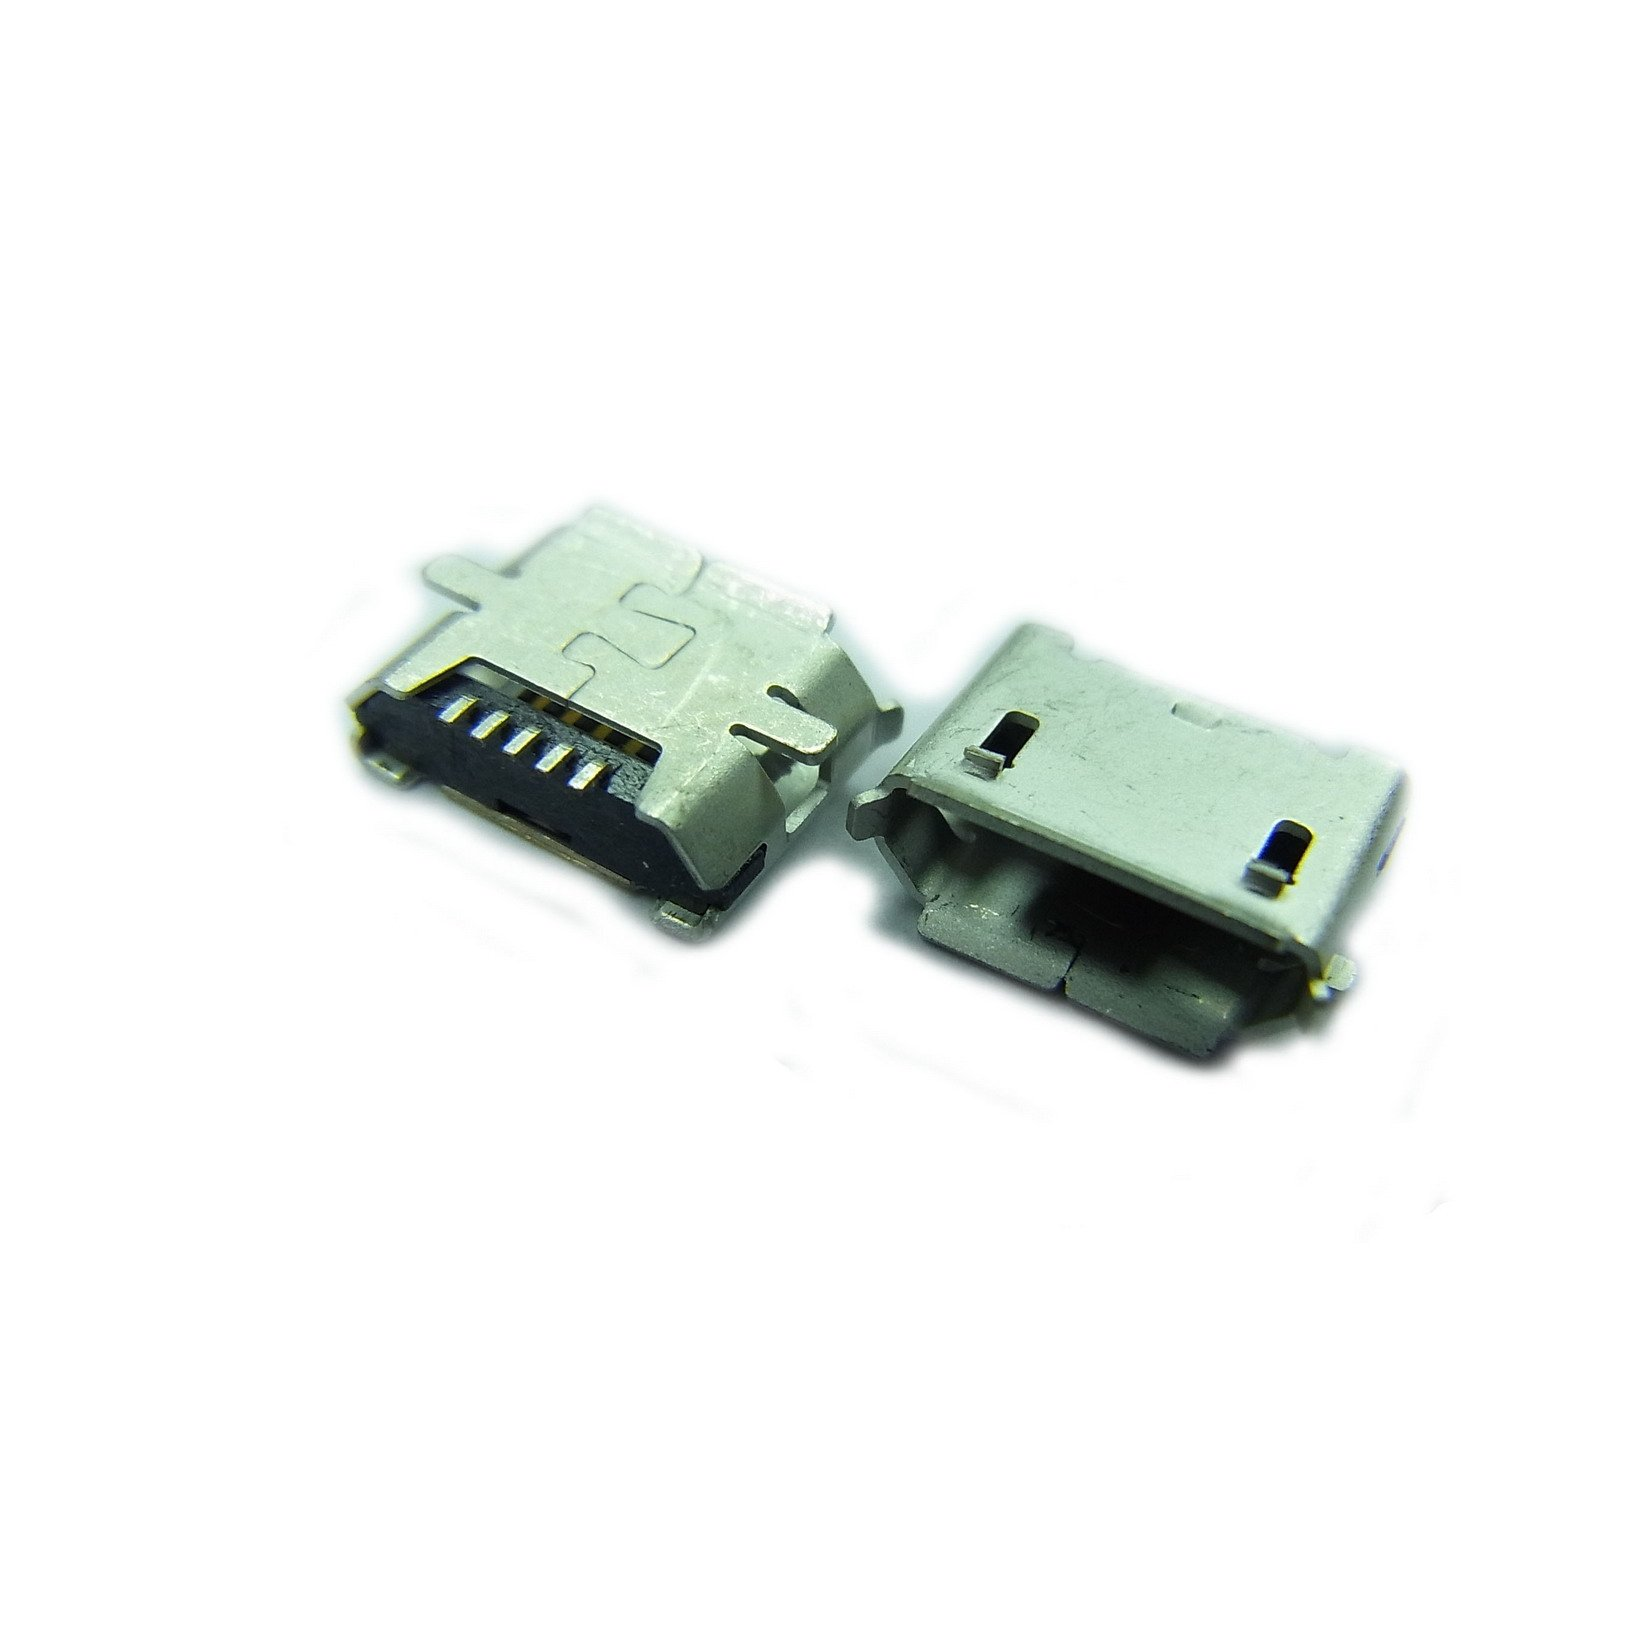 Micro USB B Type, SMT Connector